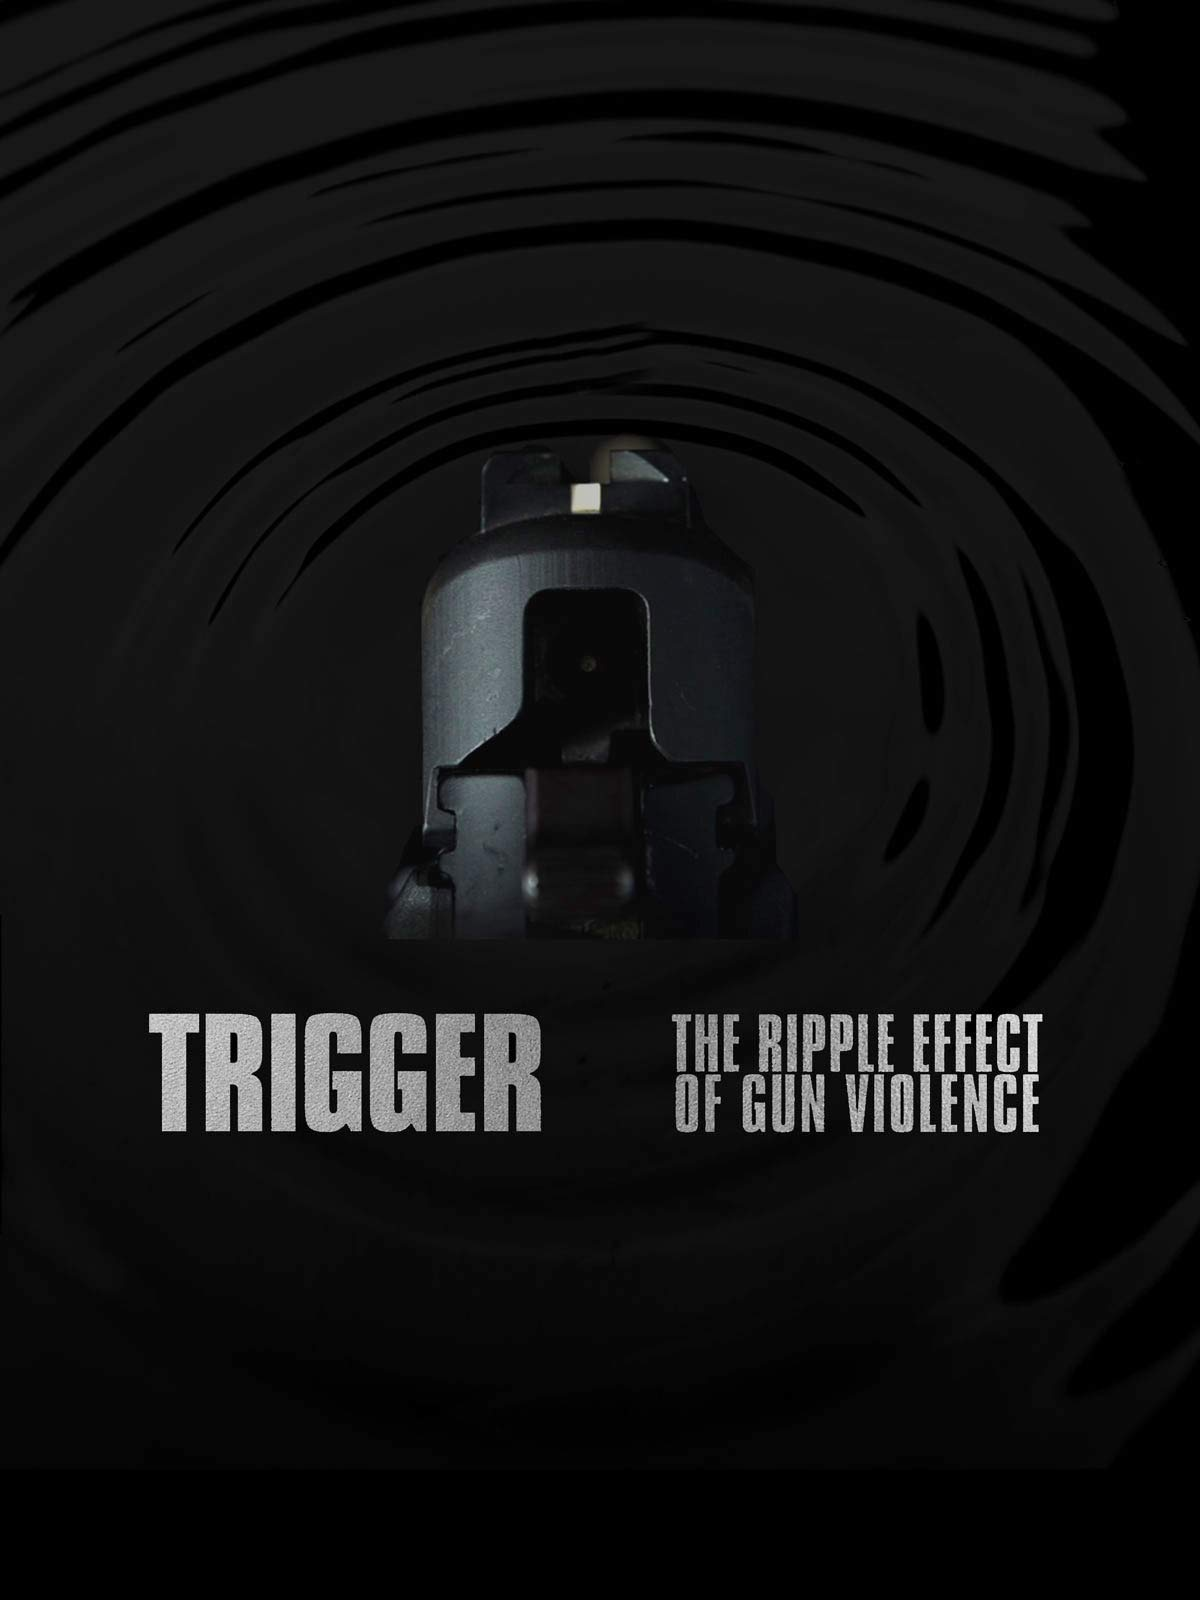 """a pointed gun on a black background with the text """"Trigger: The Ripple Effect of Gun Violence"""""""